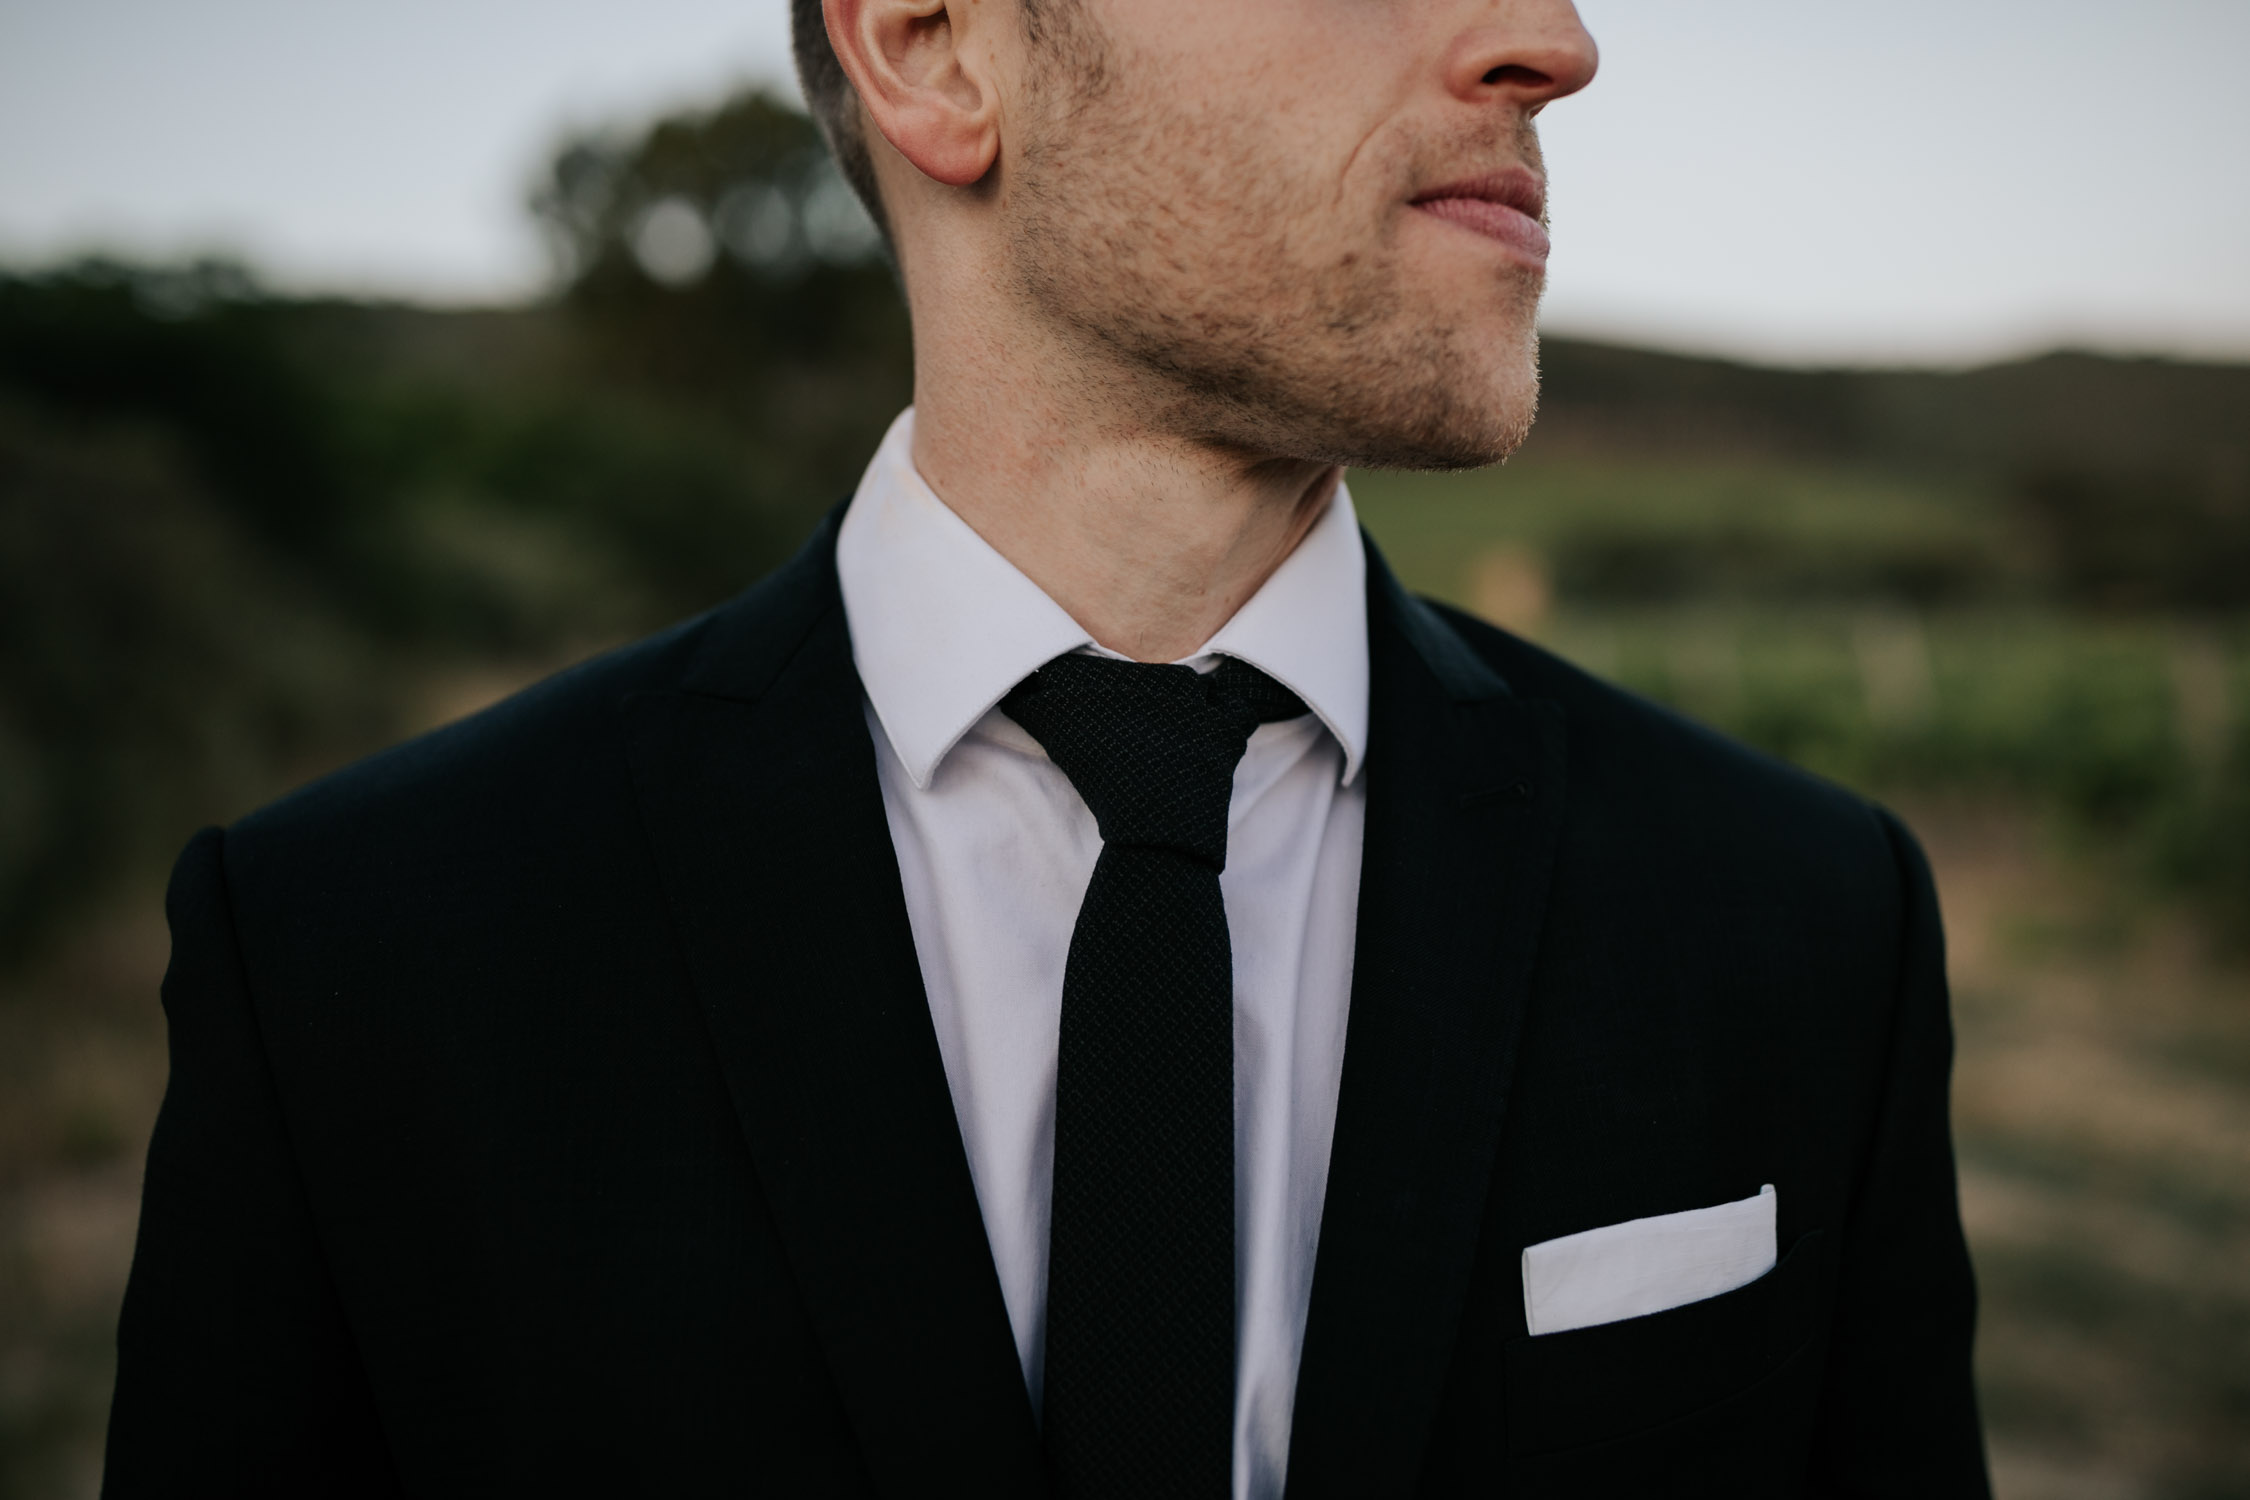 Groom portrait ideas